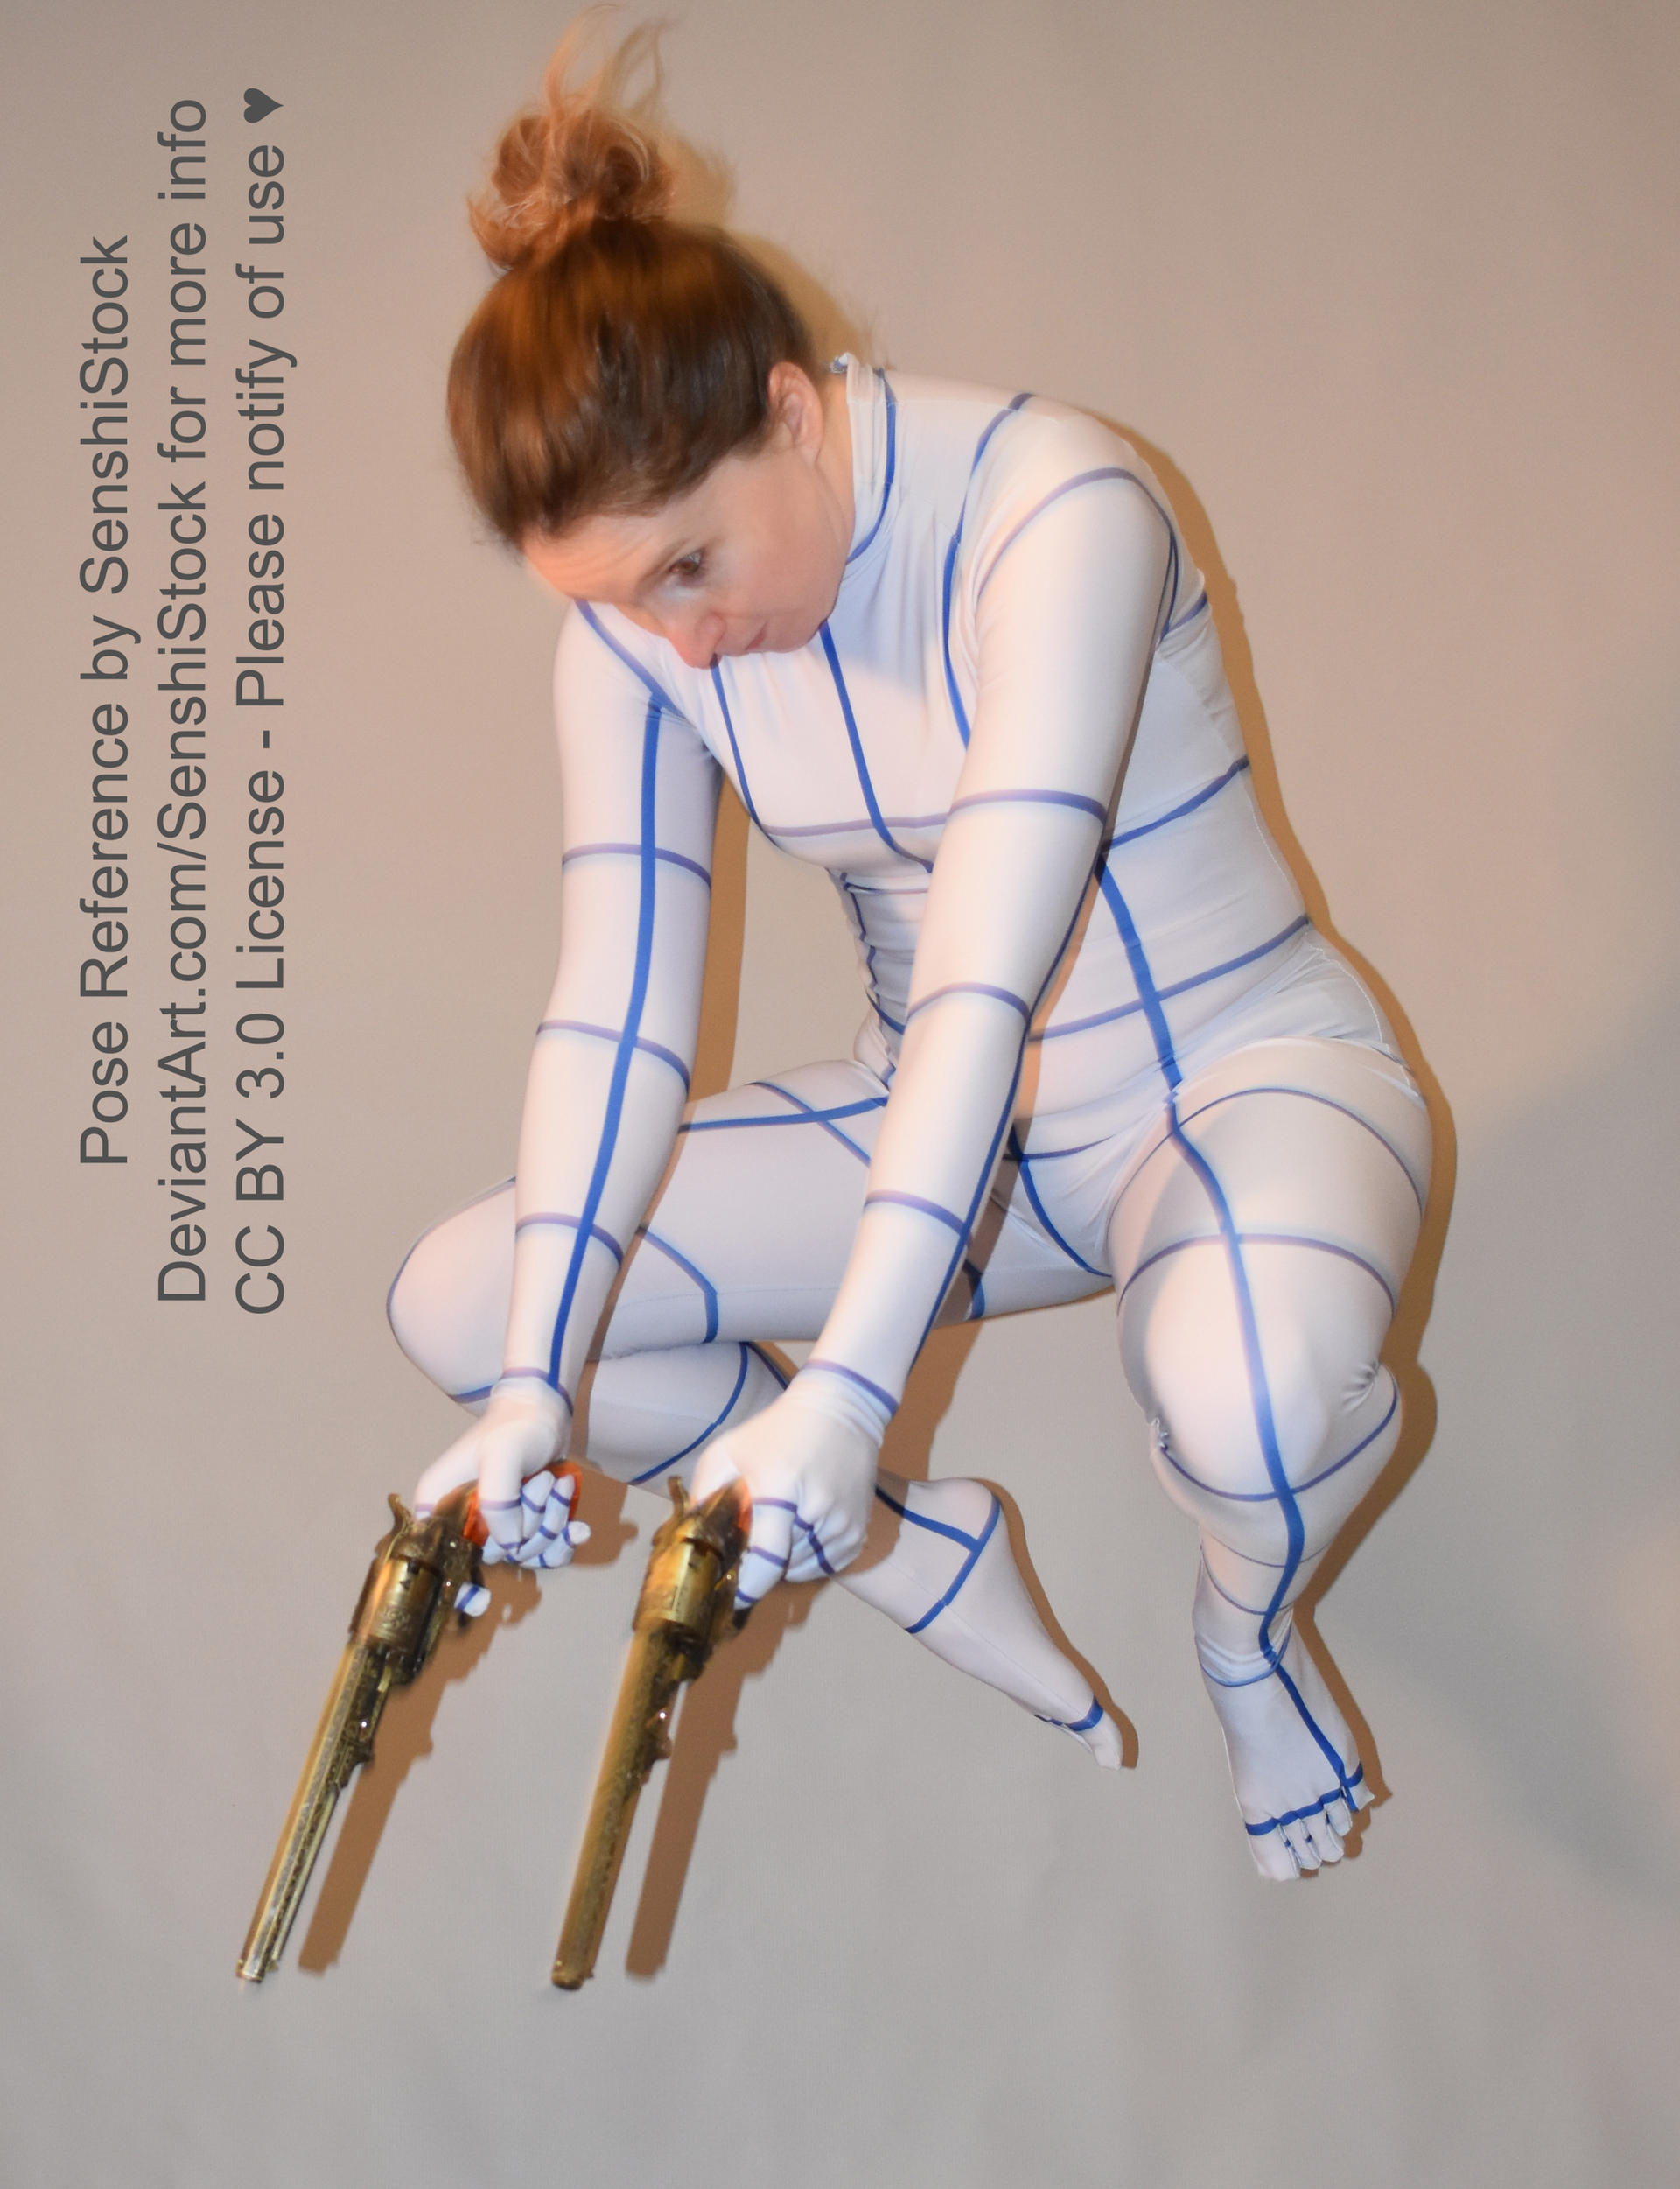 Zentai Suit Action Pose Reference For Drawing By Senshistock On Deviantart